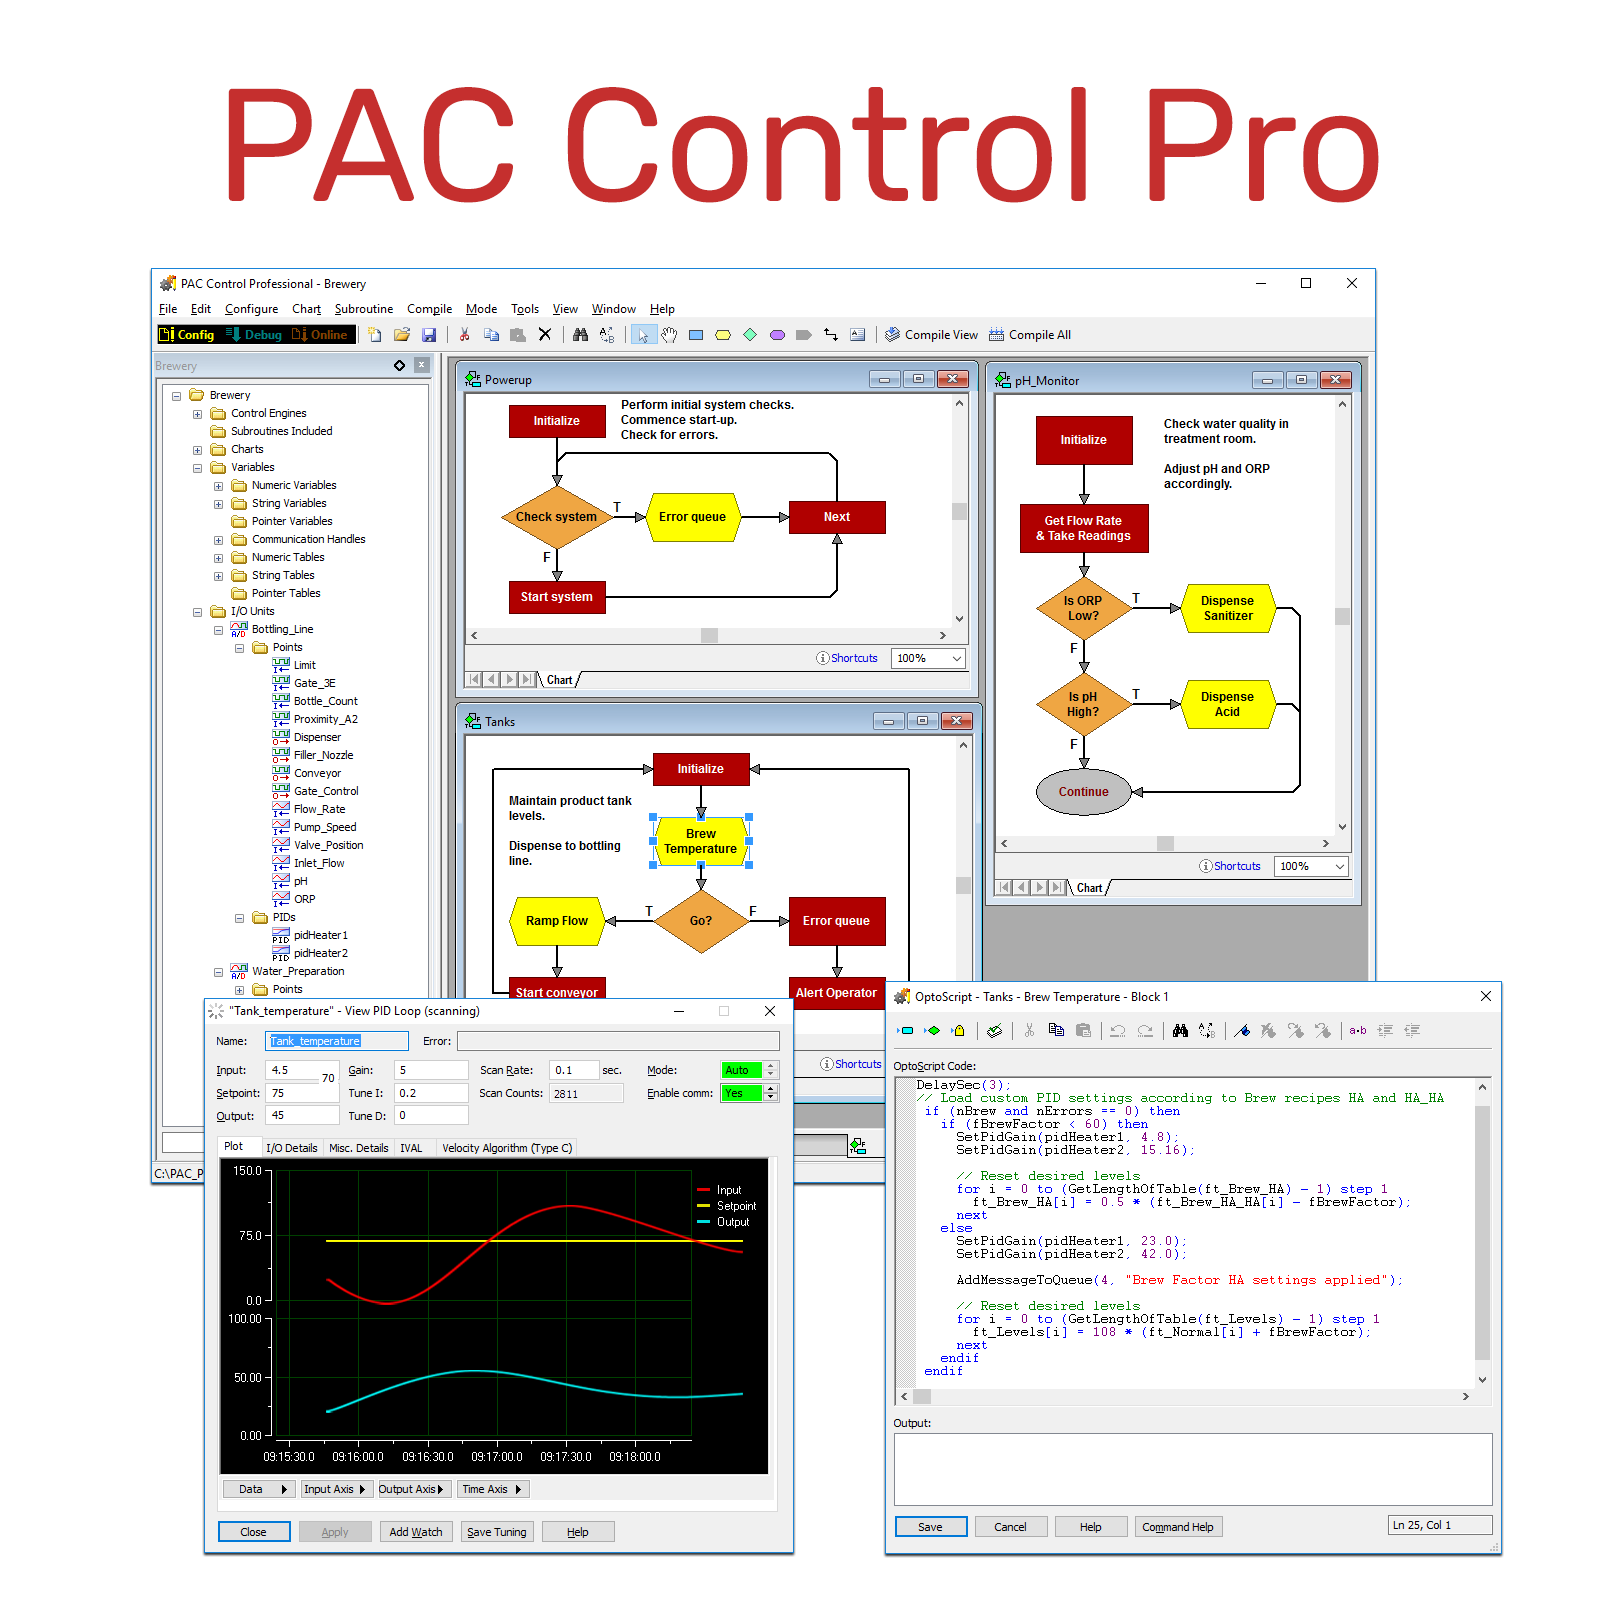 PACCONTROLPRO